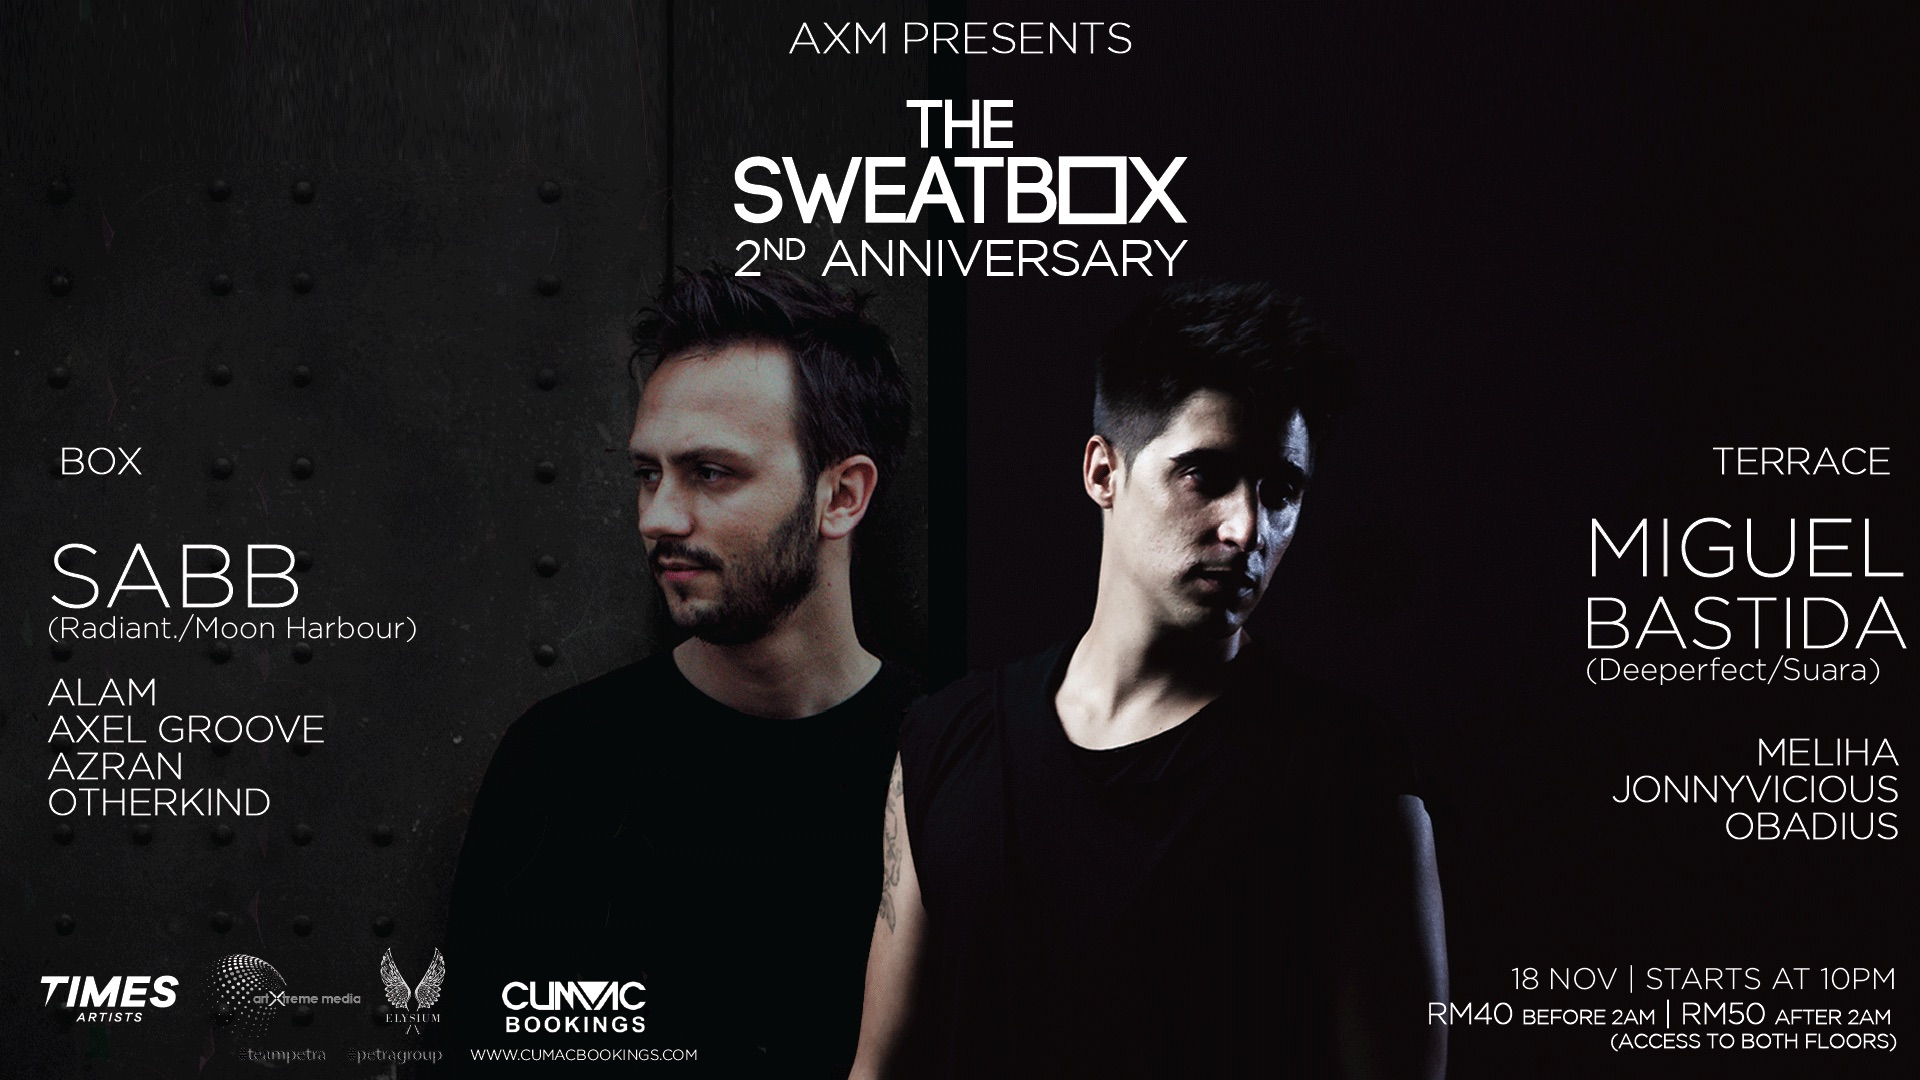 The Sweatbox 2nd Anniversary November 18